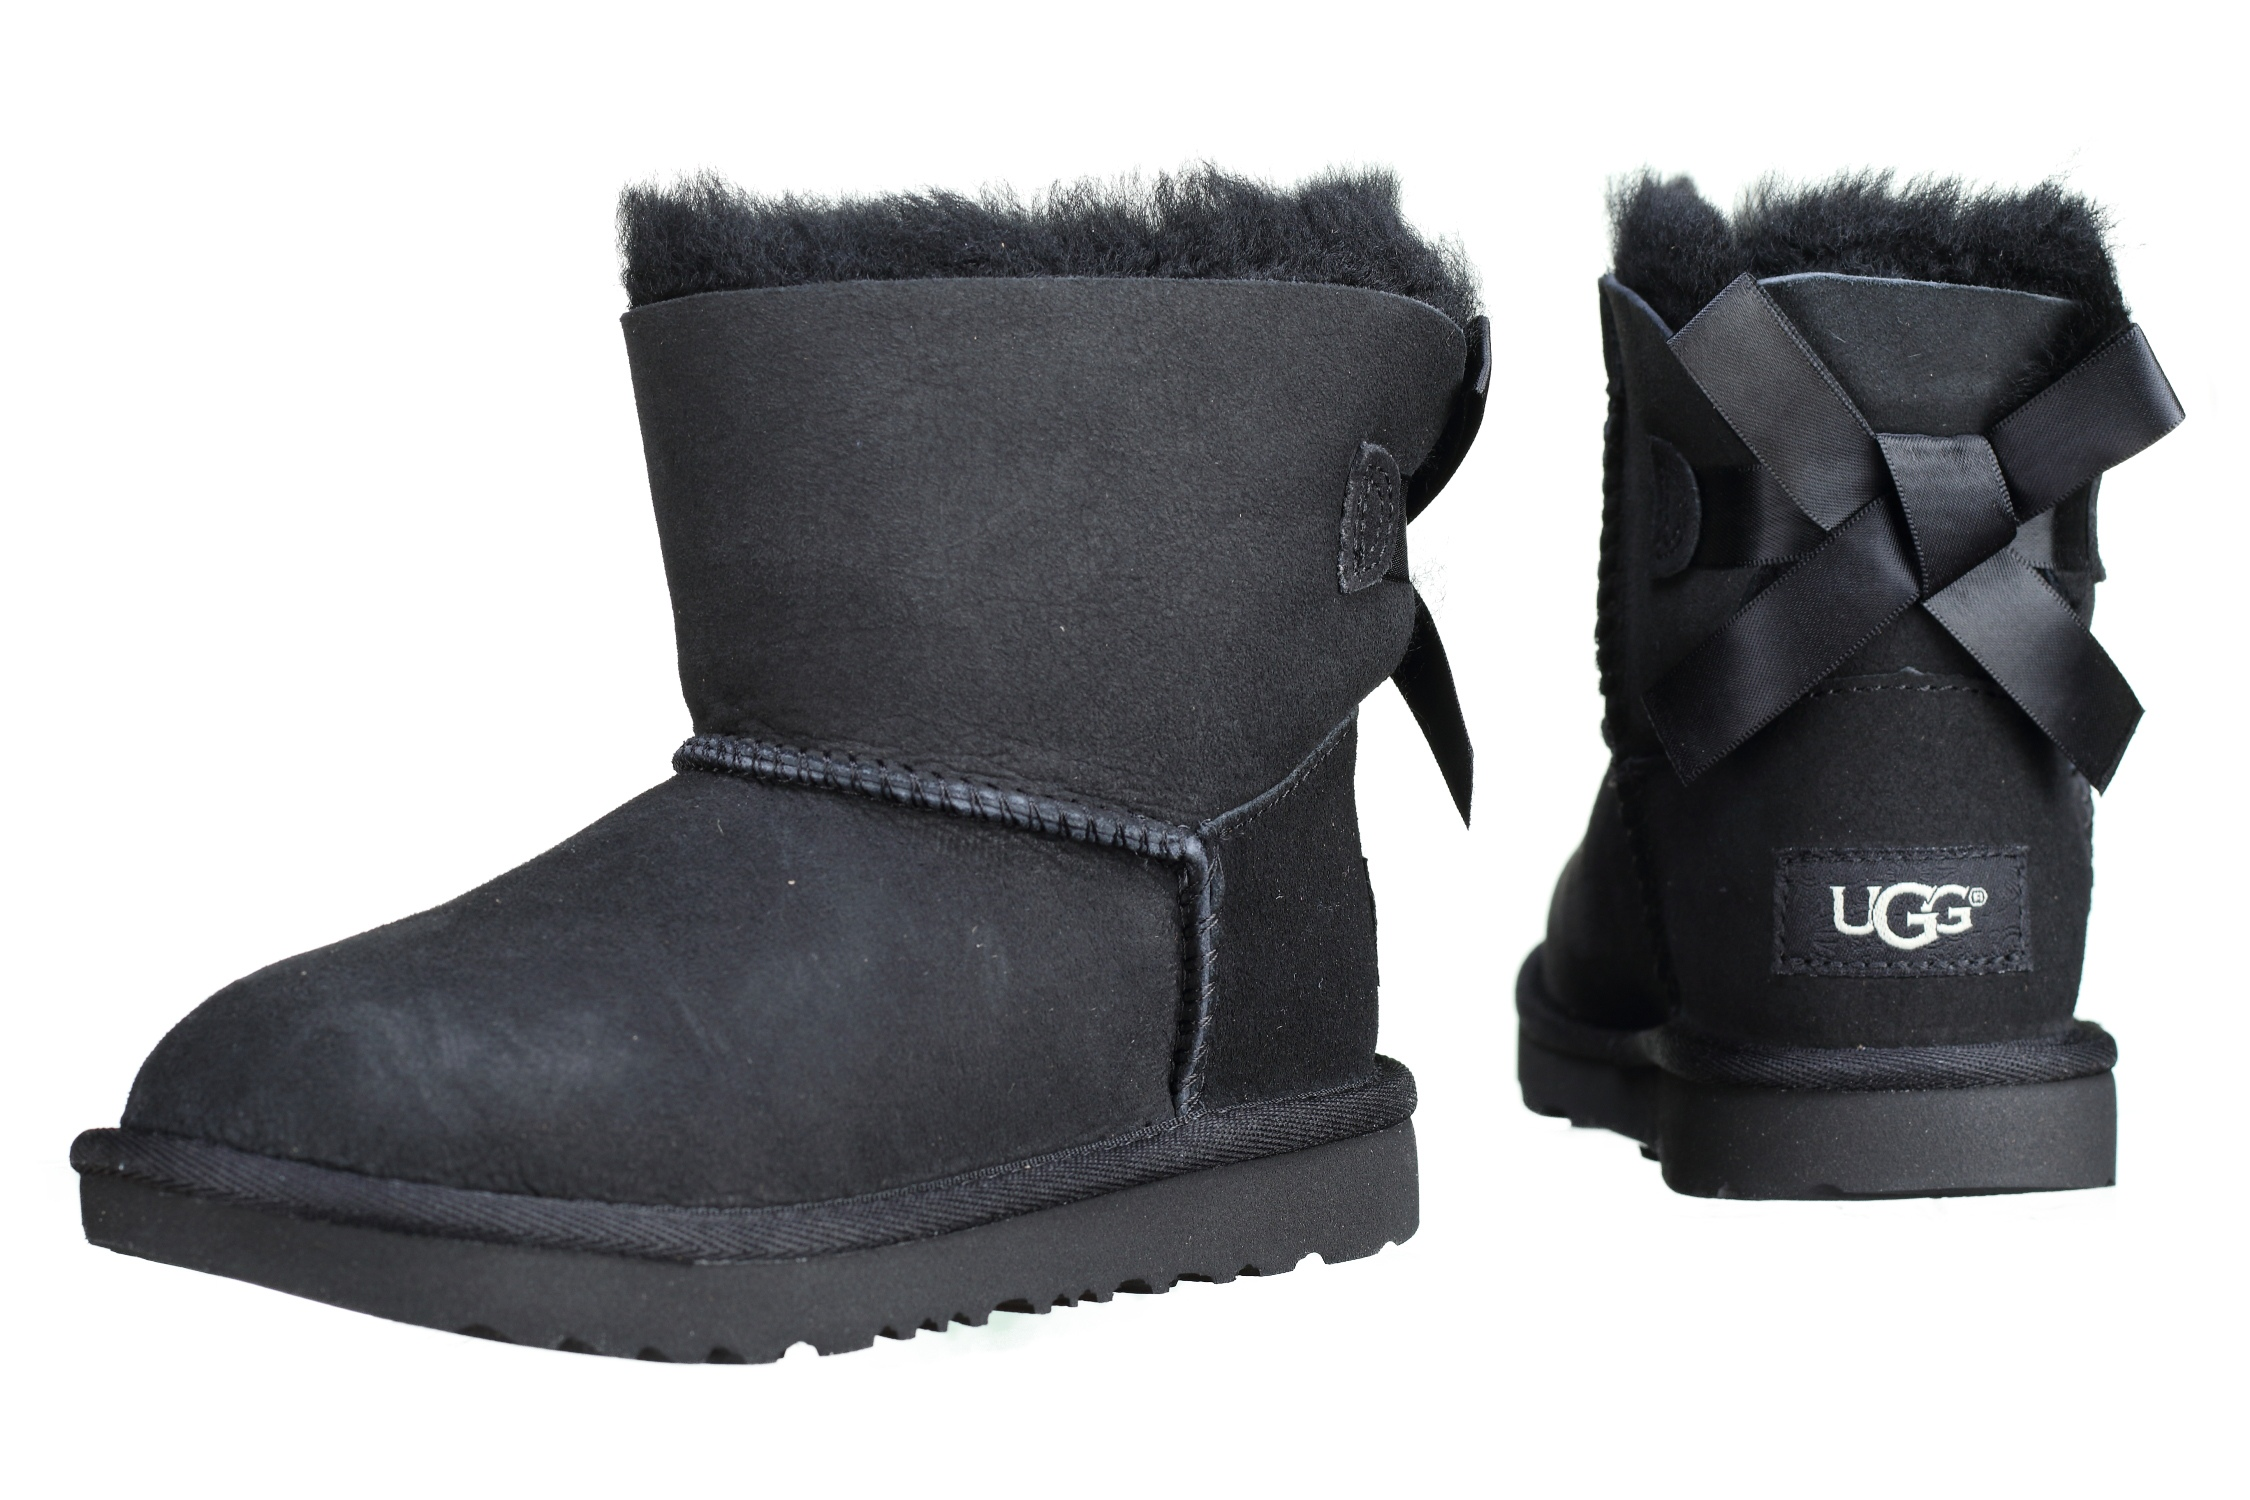 http://www.leadermode.com/133127/ugg-t-mini-bailey-bow-2-1017397t-t-black.jpg